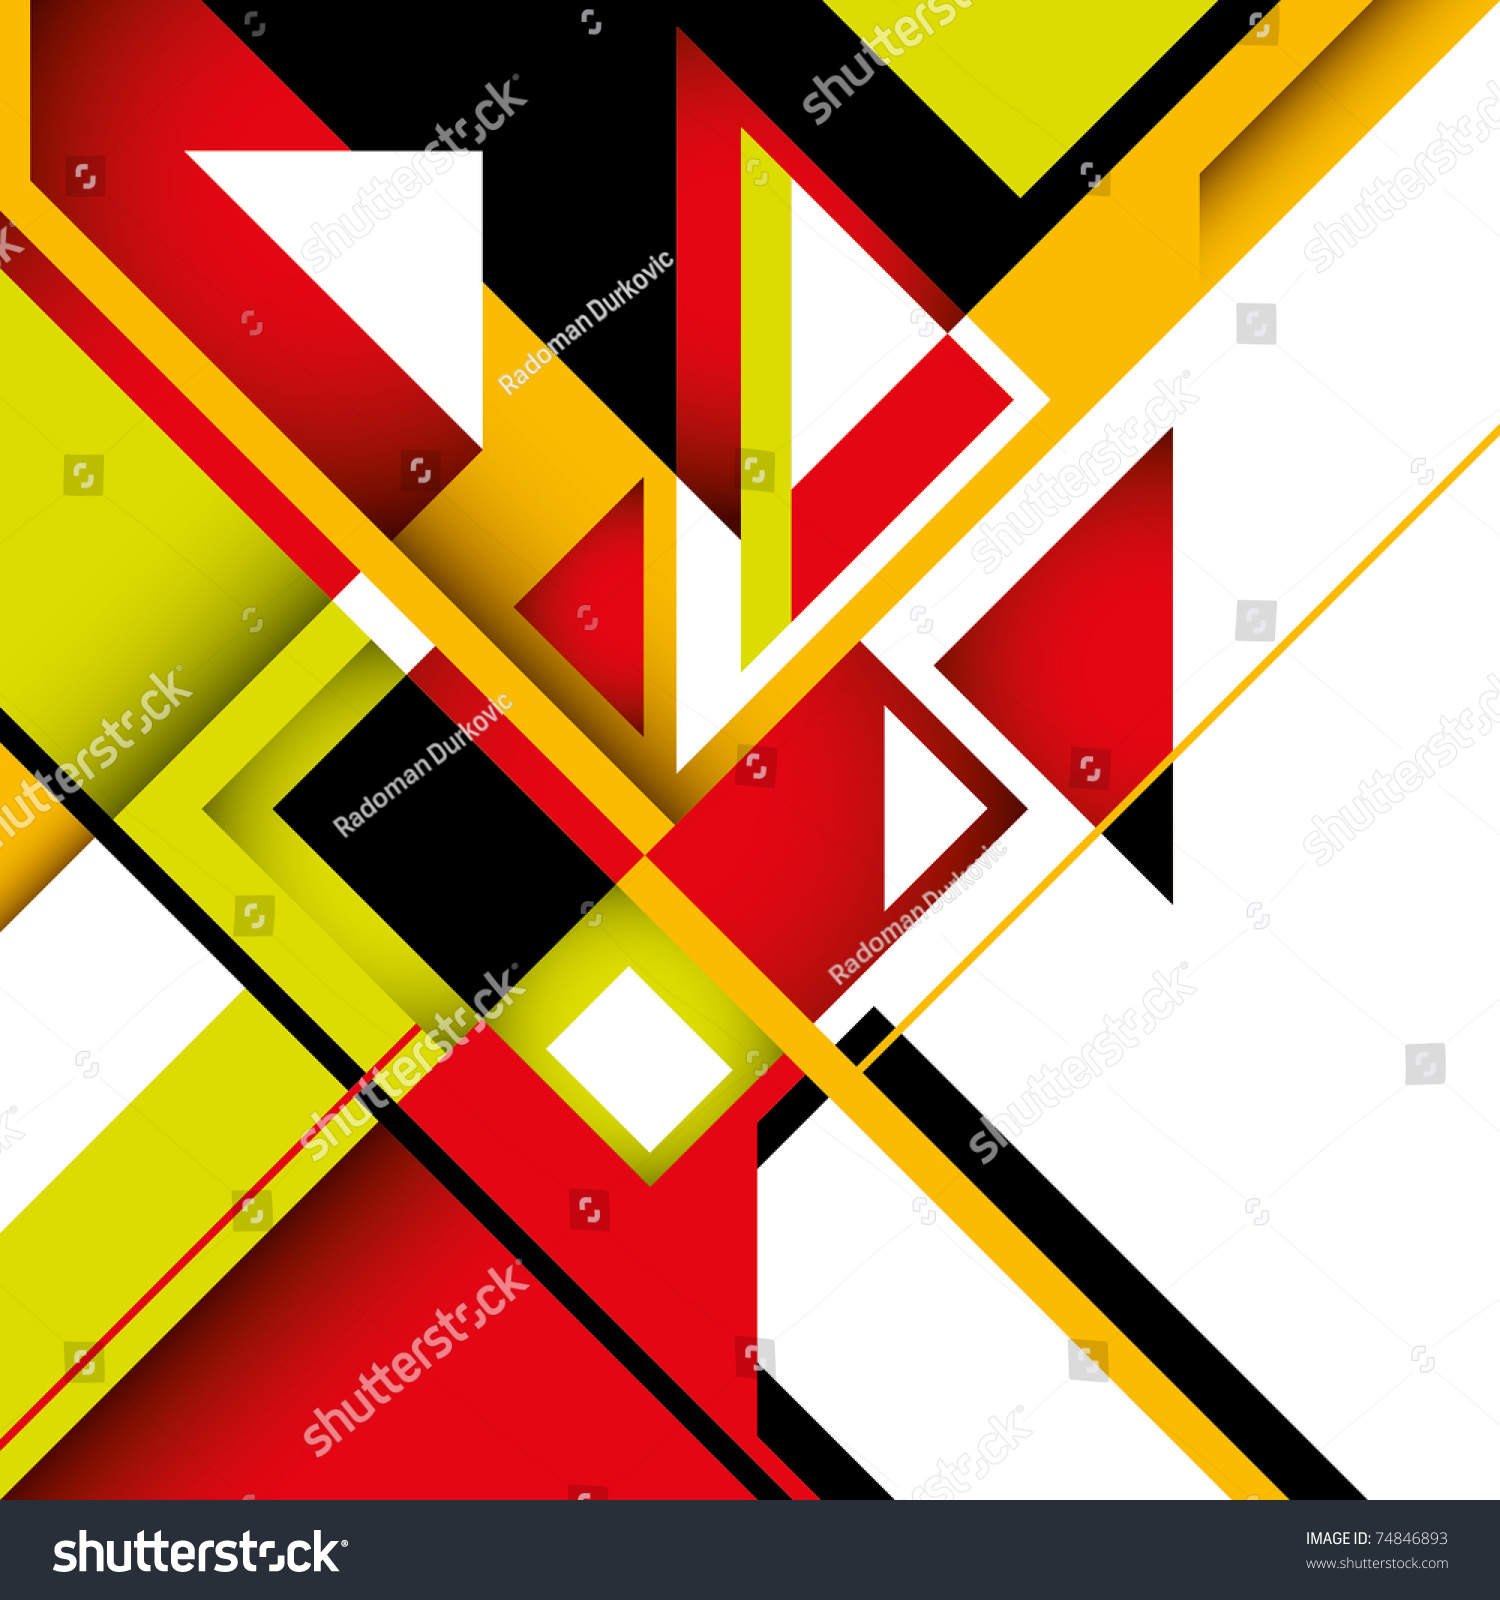 Colorful Graphic Geometric Abstract Shapes Vector Stock ...